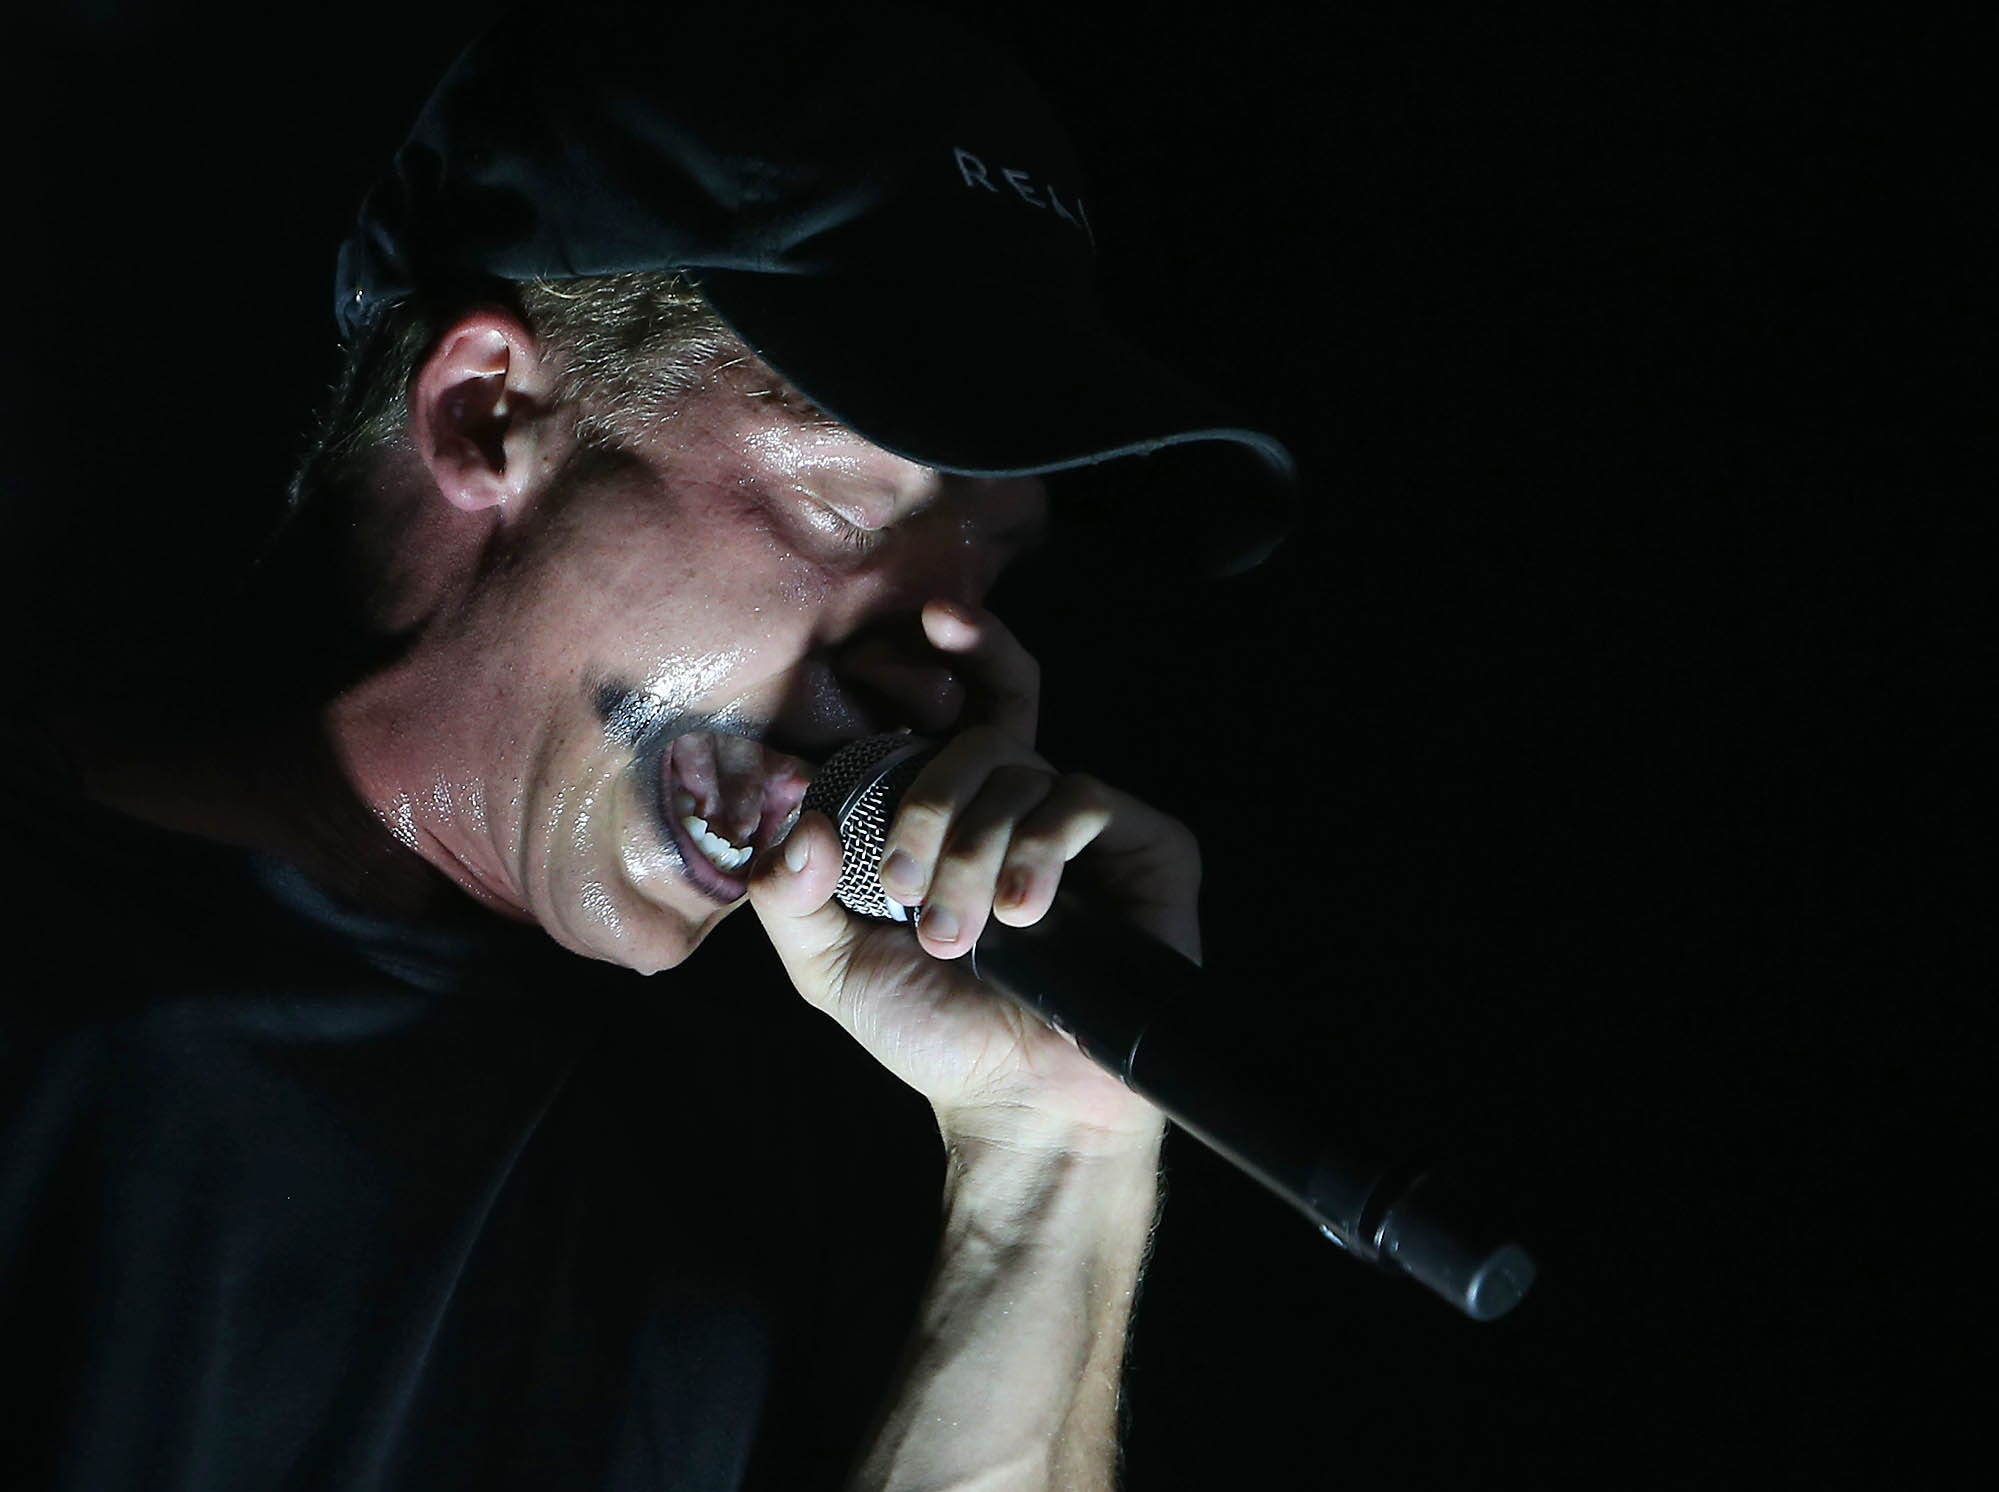 NF opens for Logic during The Bobby Tarantino vs Everybody Tour at Ak-Chin Pavilion in Phoenix on Wednesday, July 25, 2018.